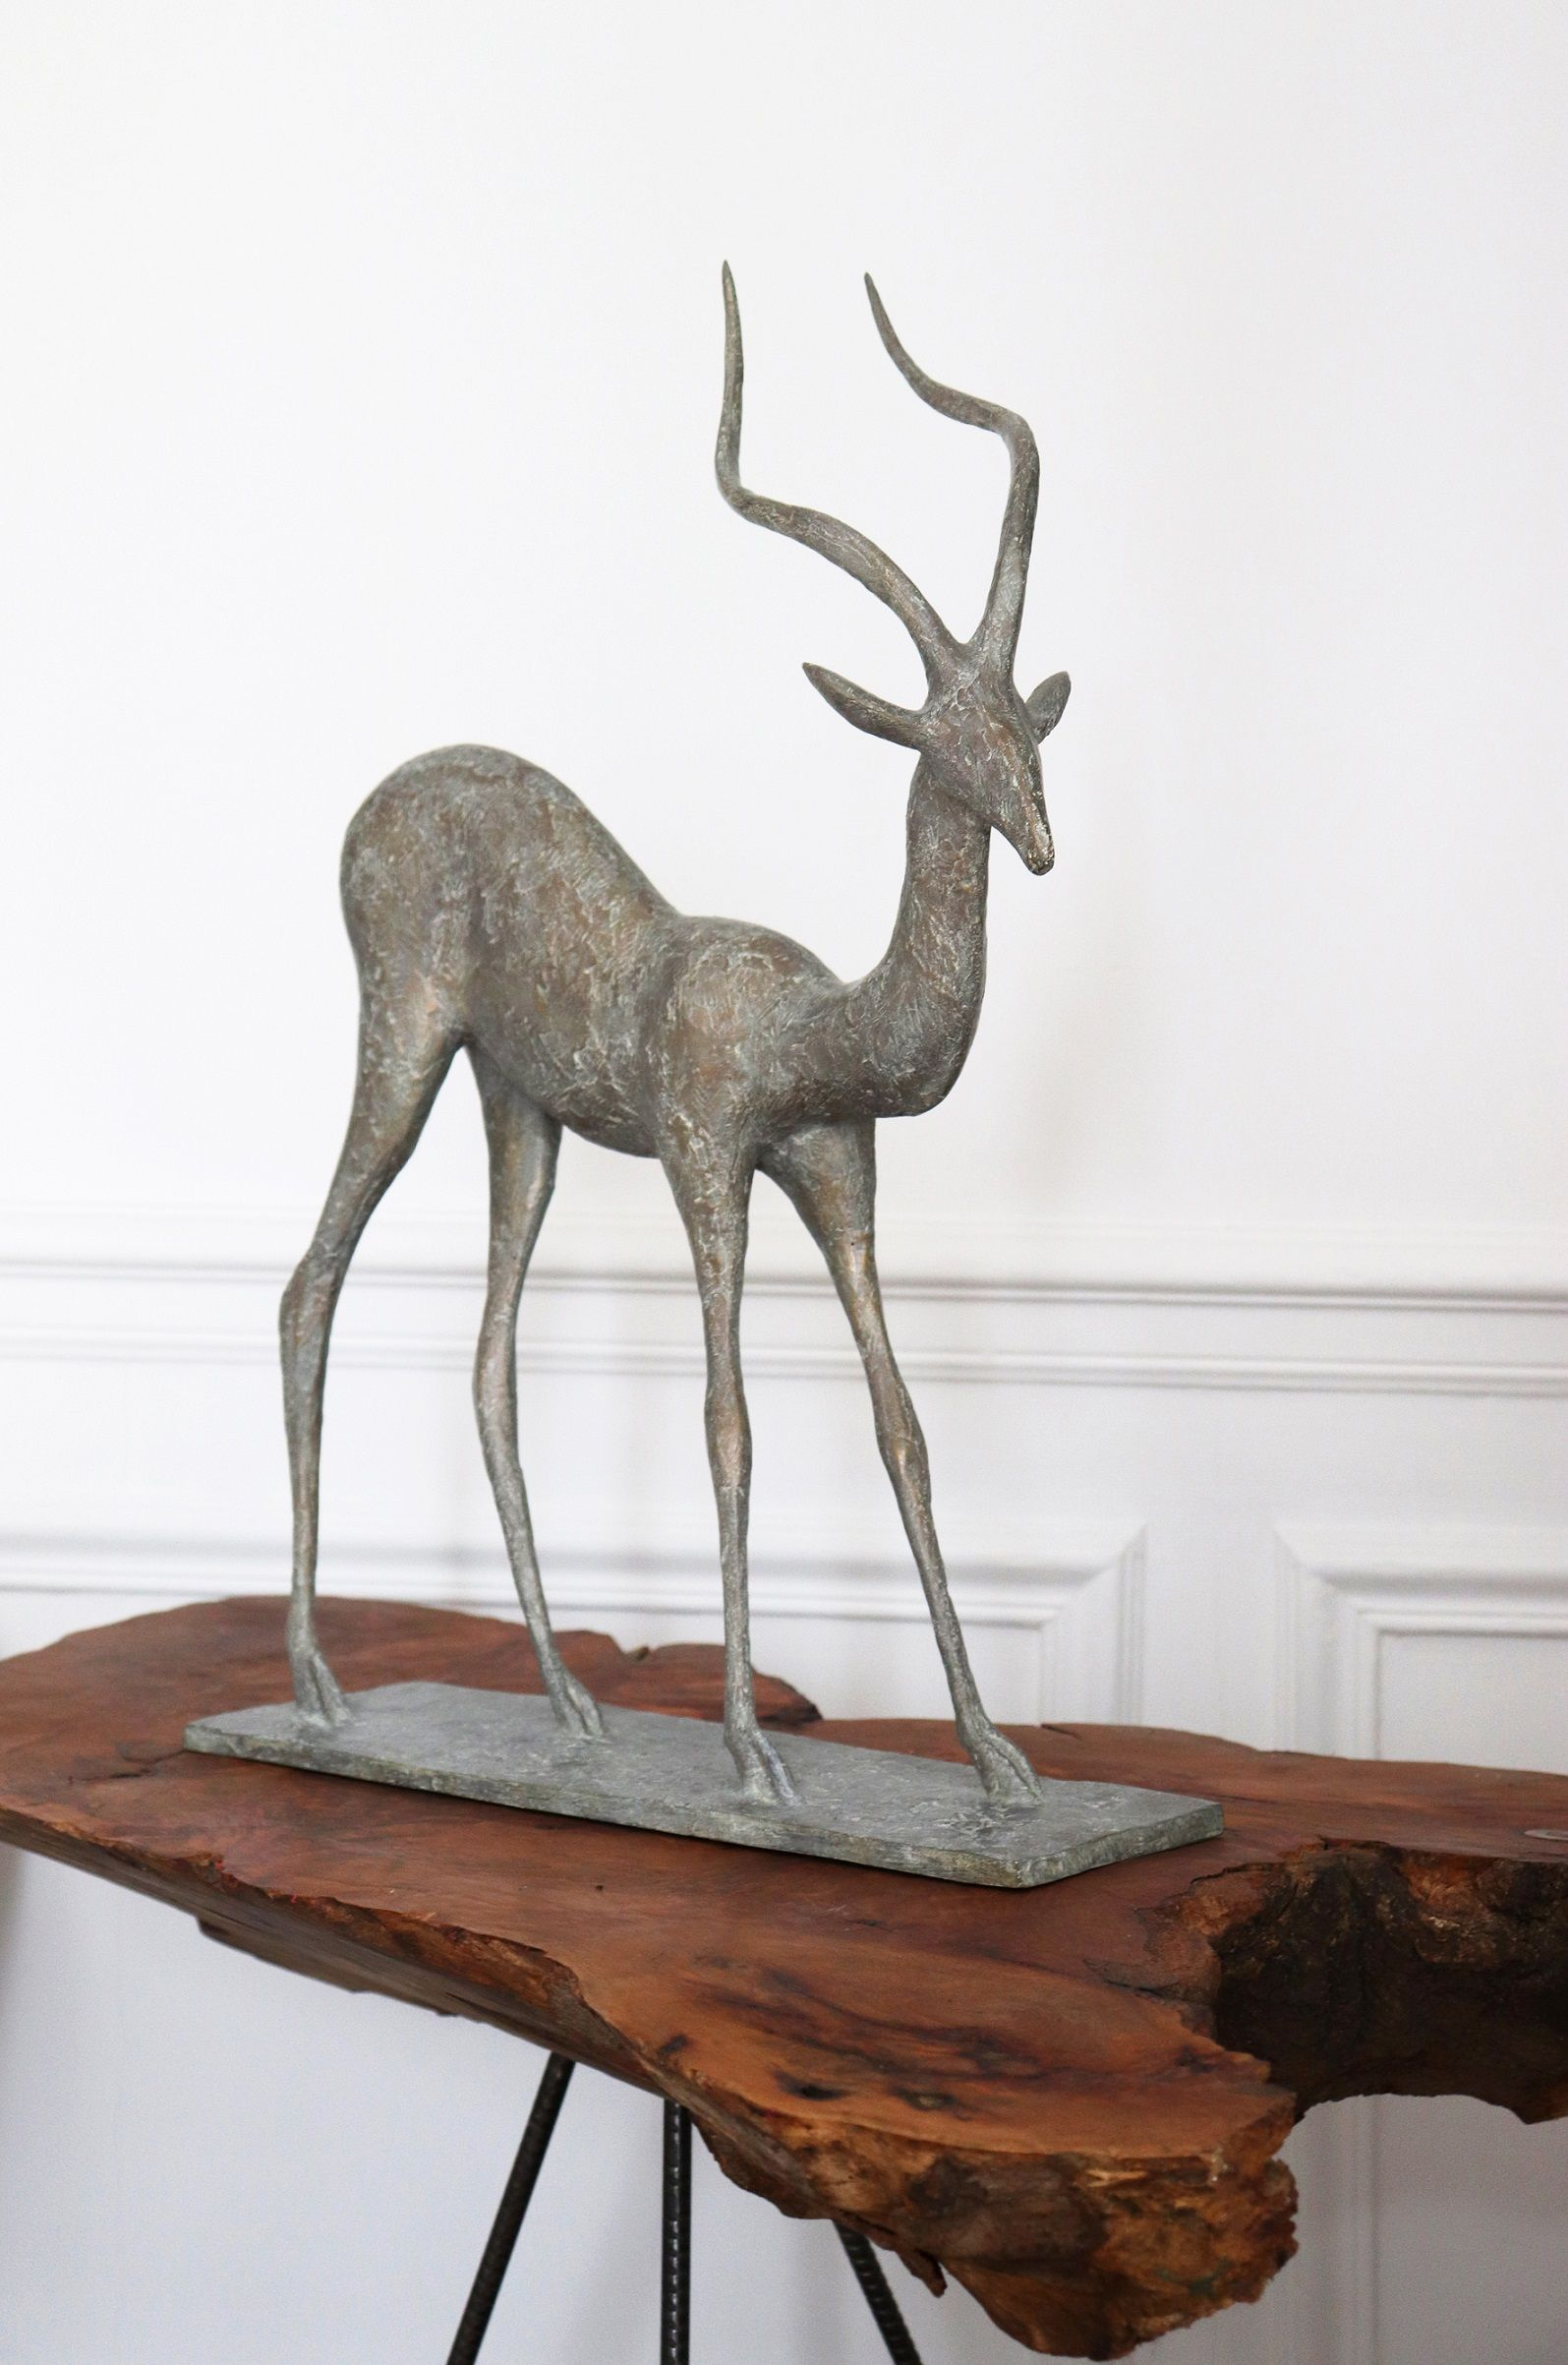 Gazelle III,Pierre Yermia,Sculpture, detail 4